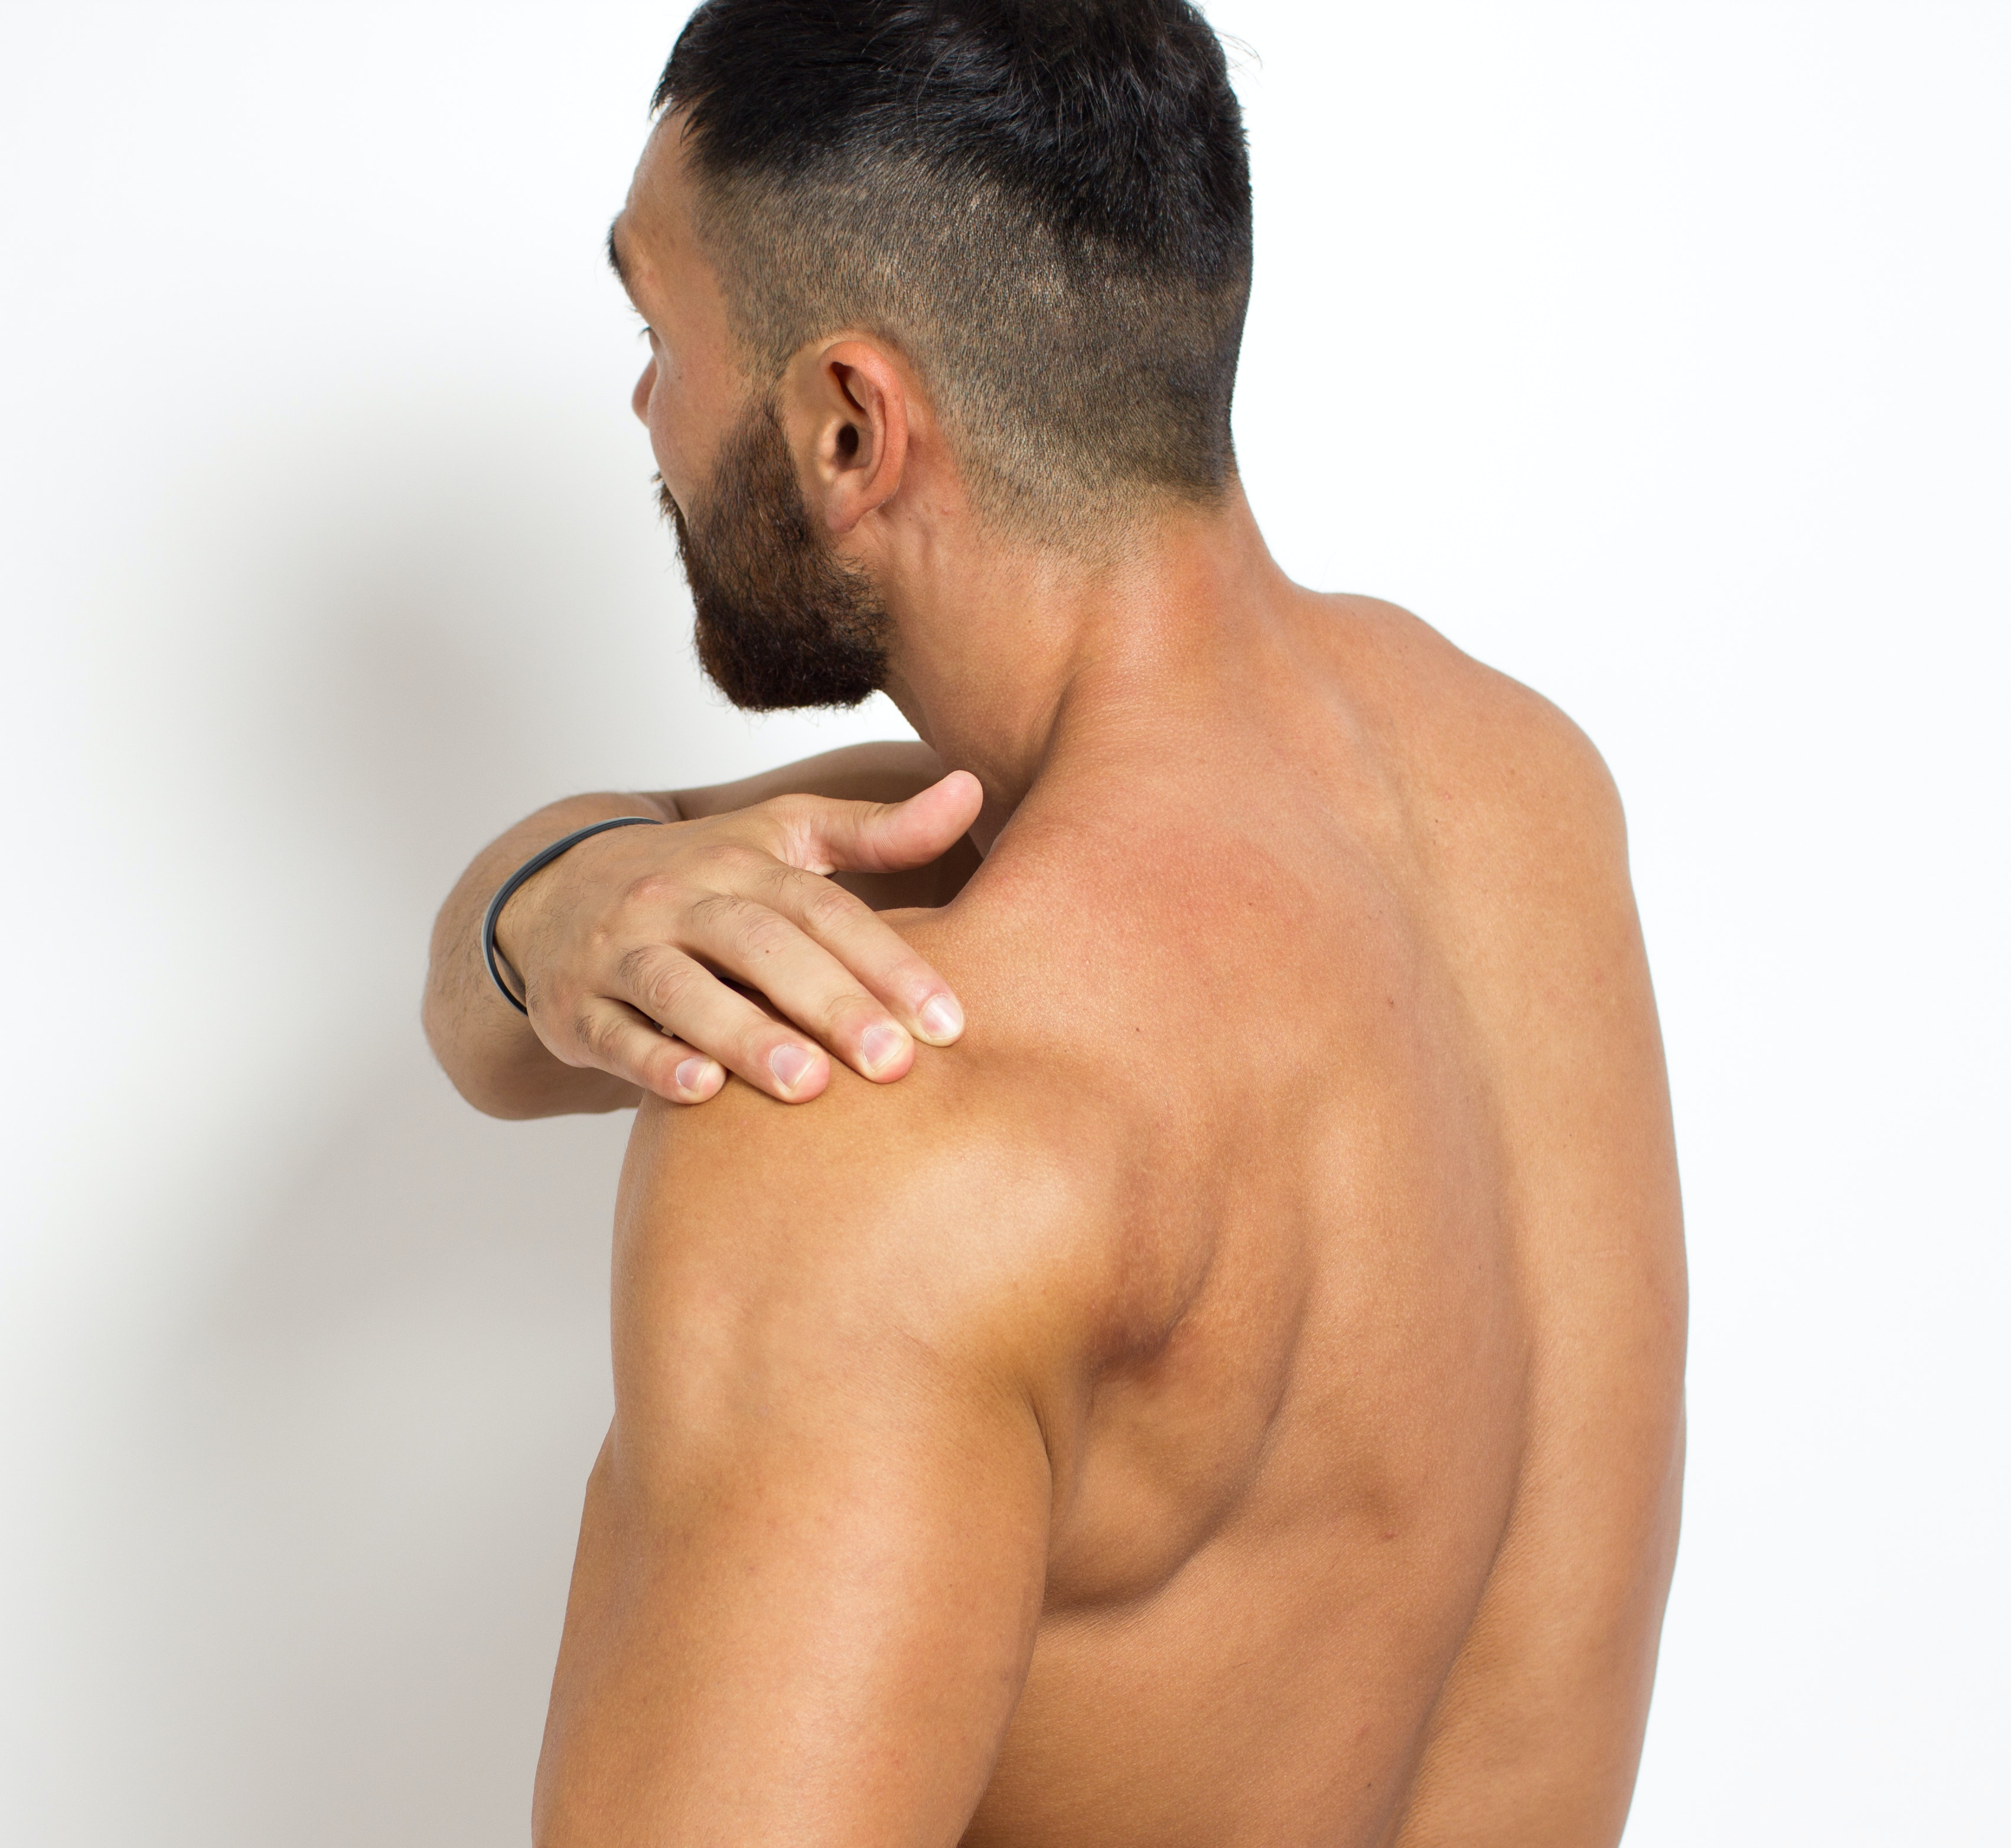 An image depicting a person suffering from swelling of both shoulders symptoms